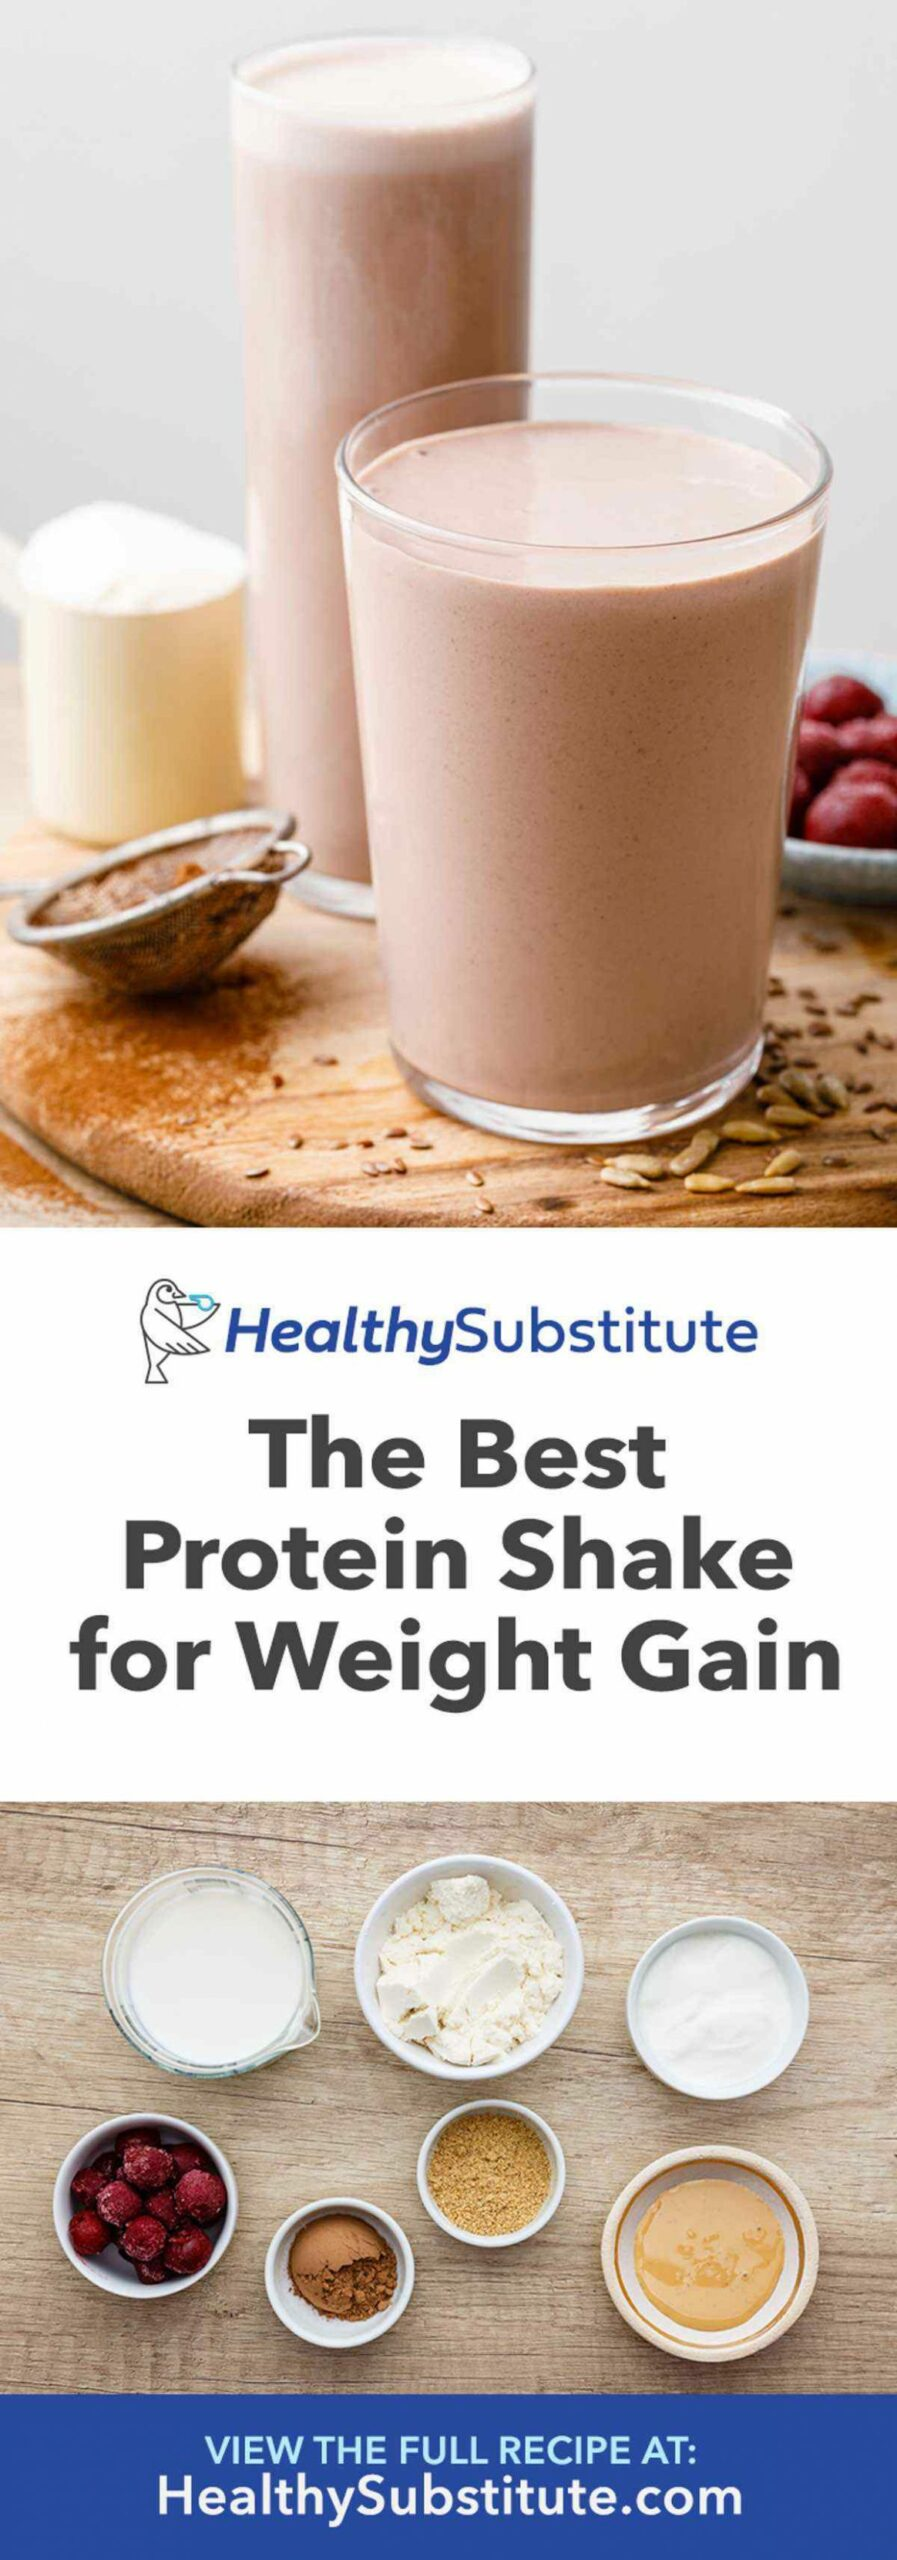 The Best Protein Shake Recipe for Weight Gain (Drink This ..